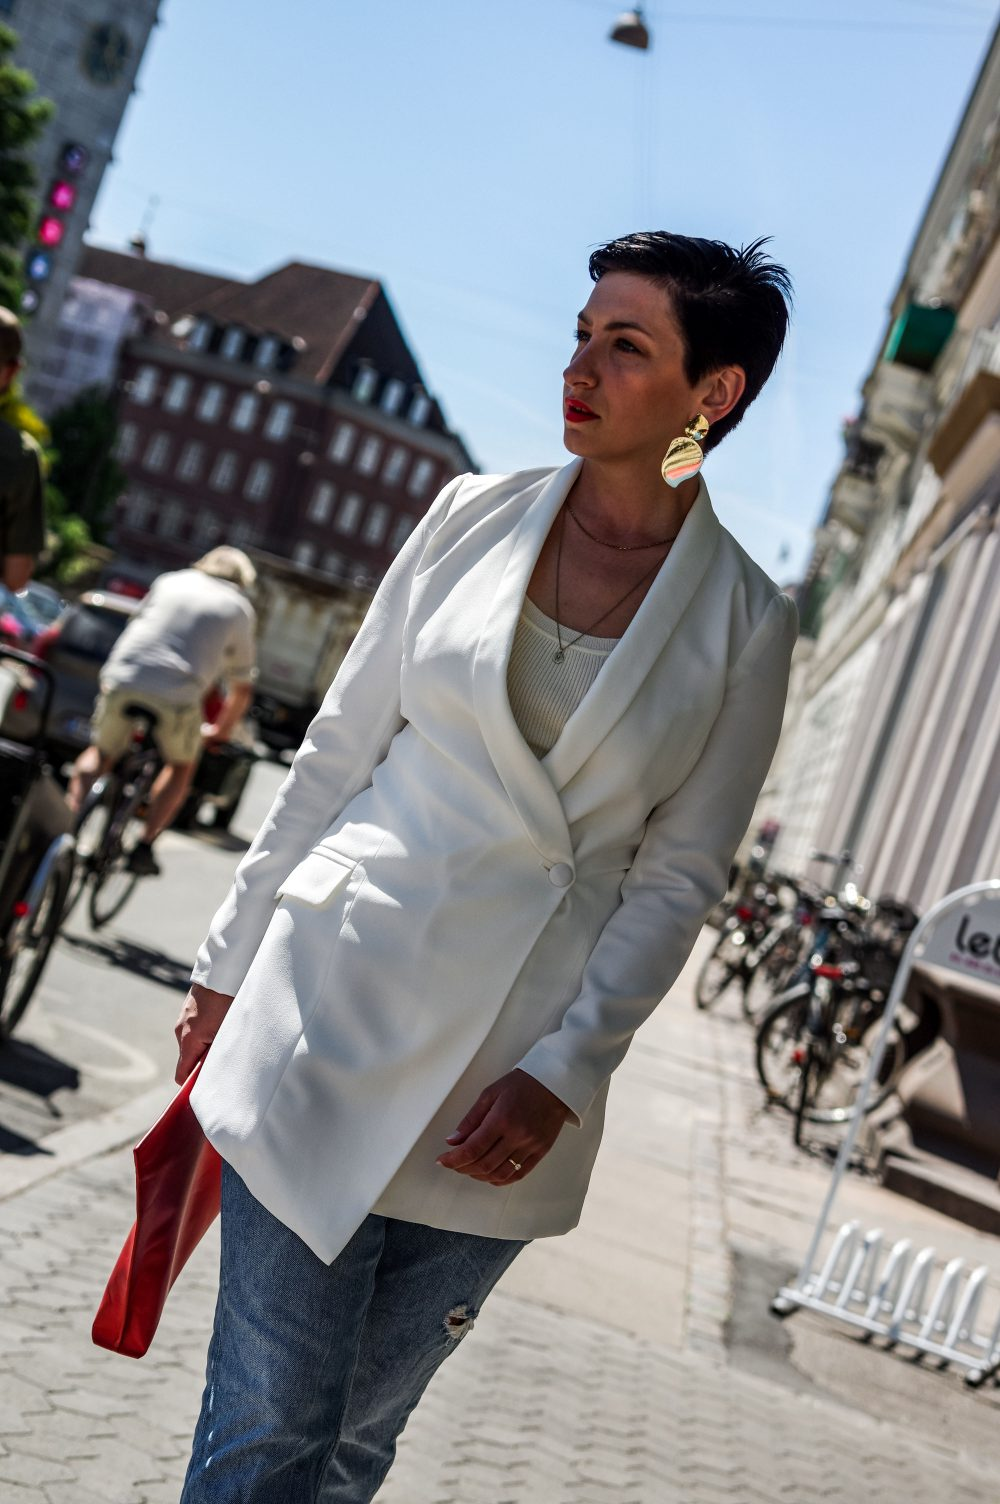 work wear, white blazer, spring outfit idea, how to make a great first impression at work or in life2